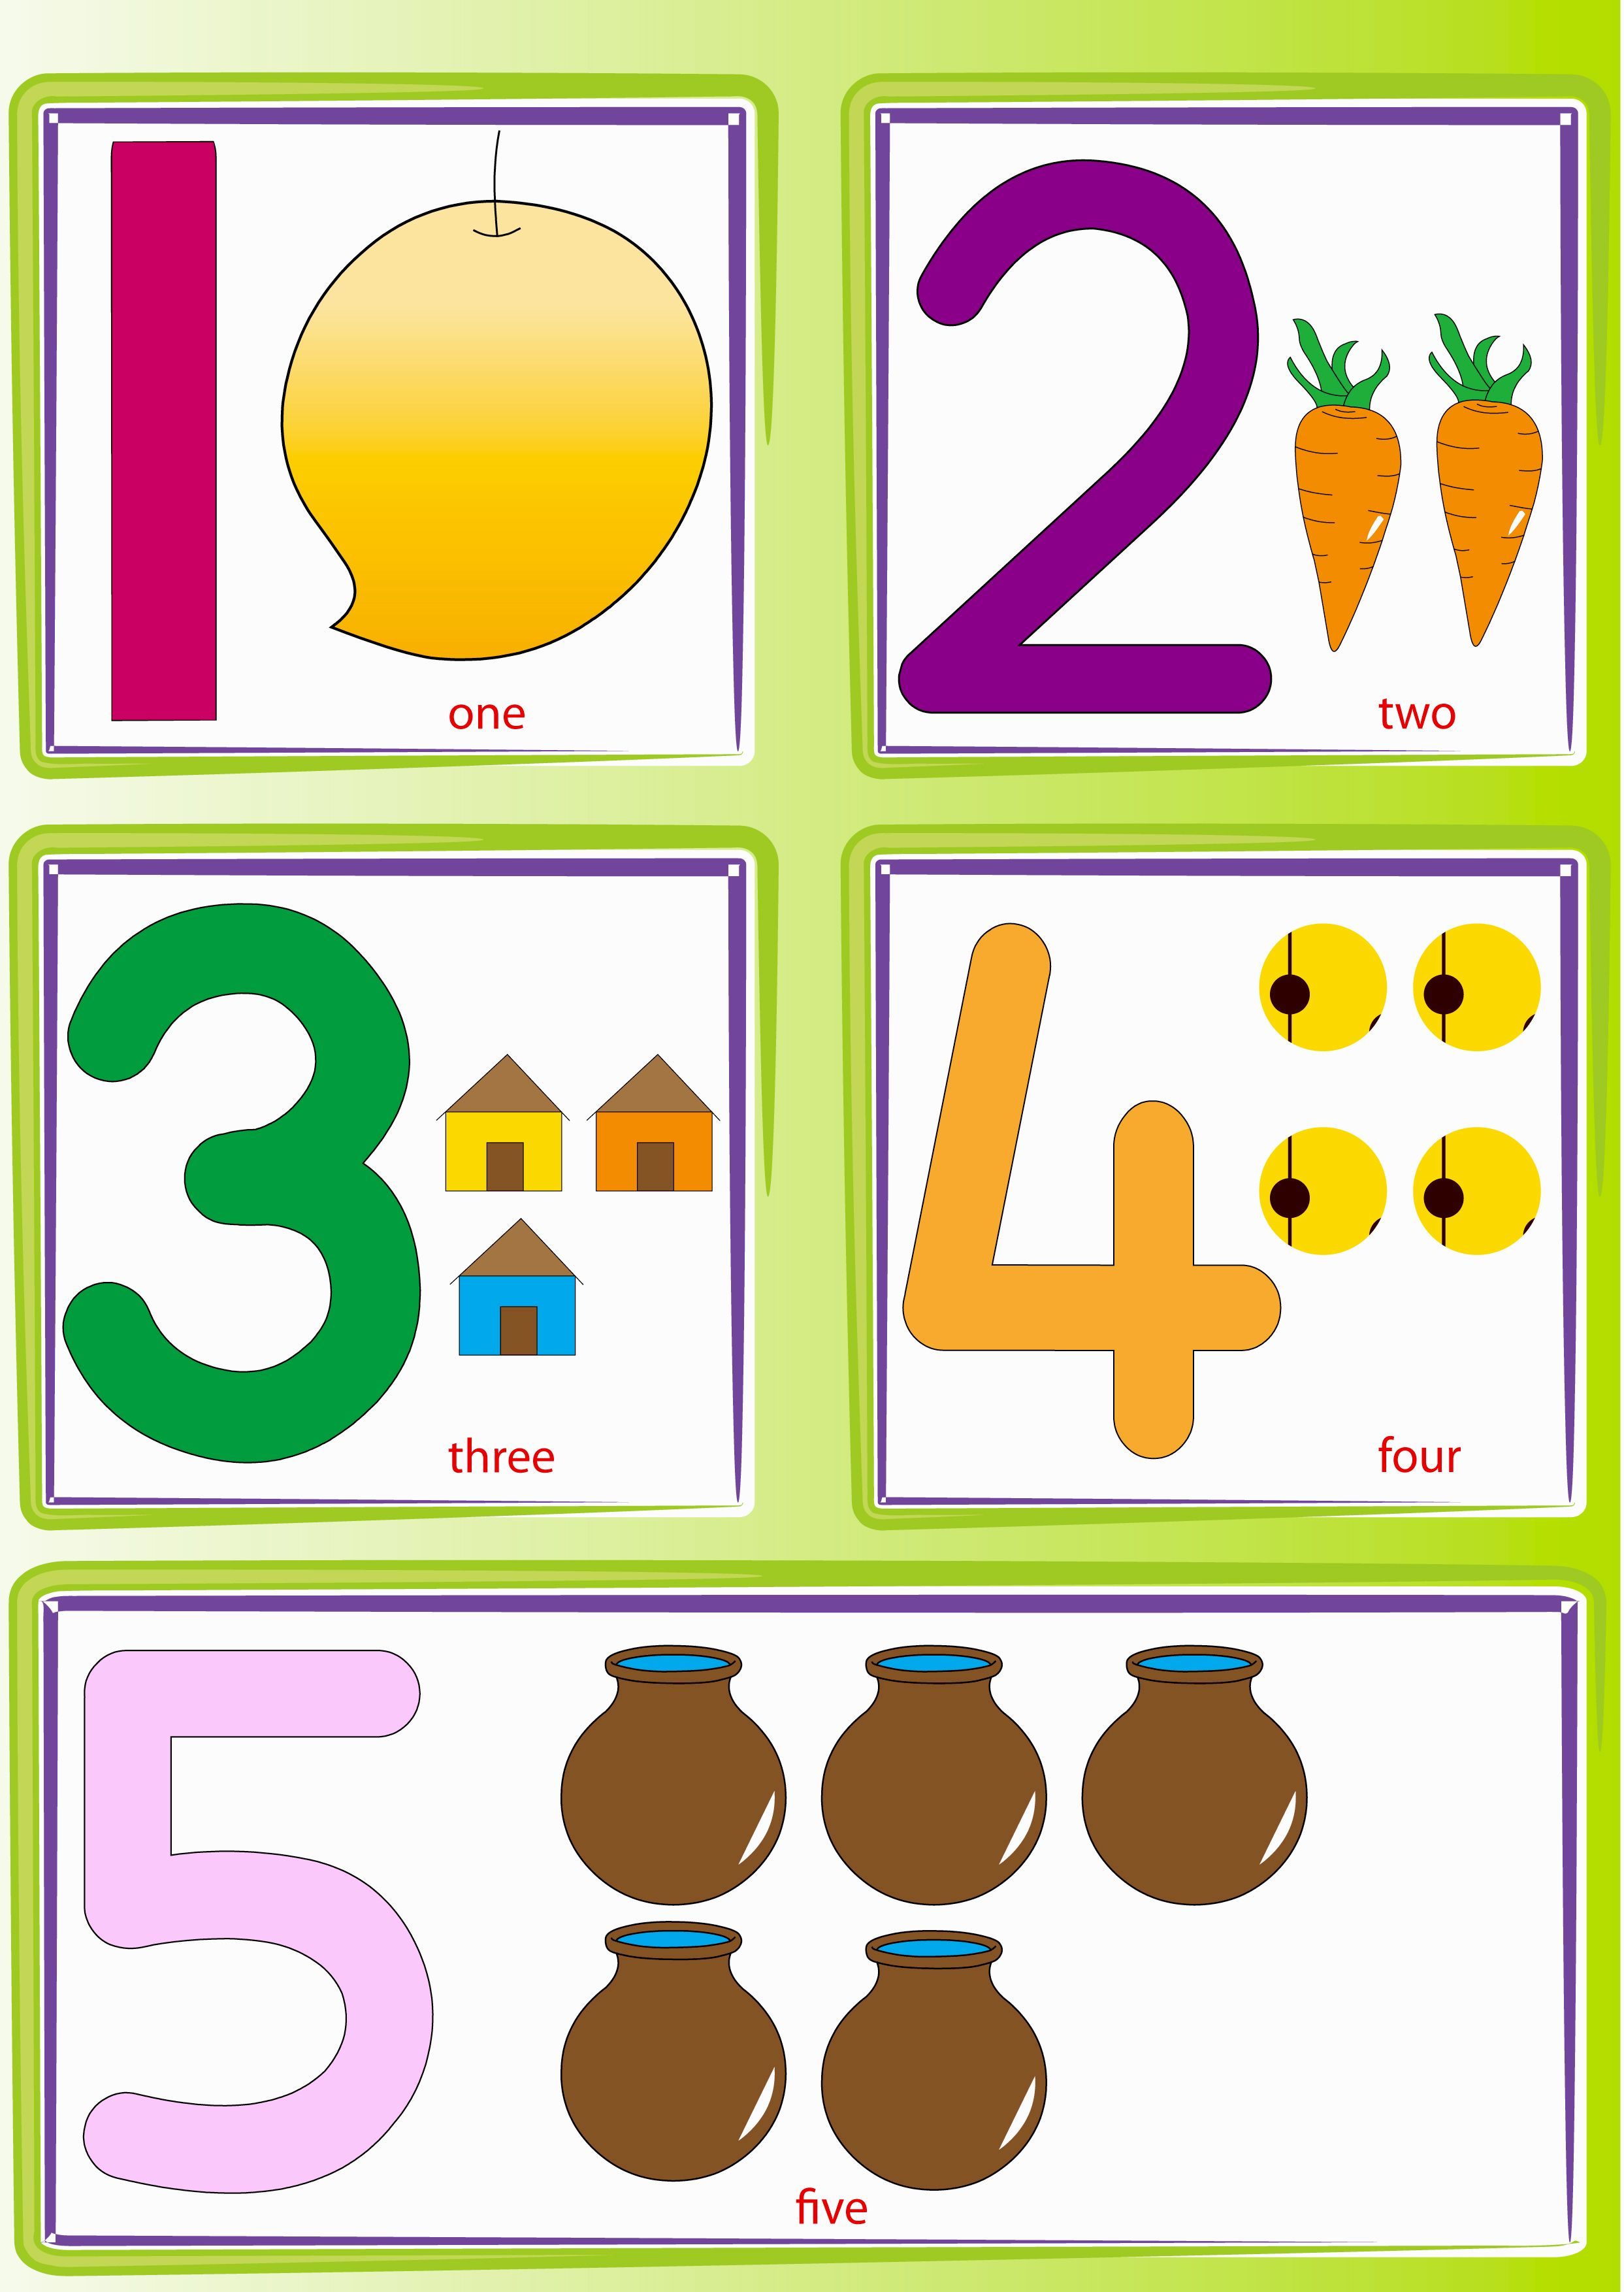 Number Recognition Worksheets Activities Number Recognition Worksheets Numbers Kindergarten Number Worksheets Kindergarten [ 3508 x 2486 Pixel ]